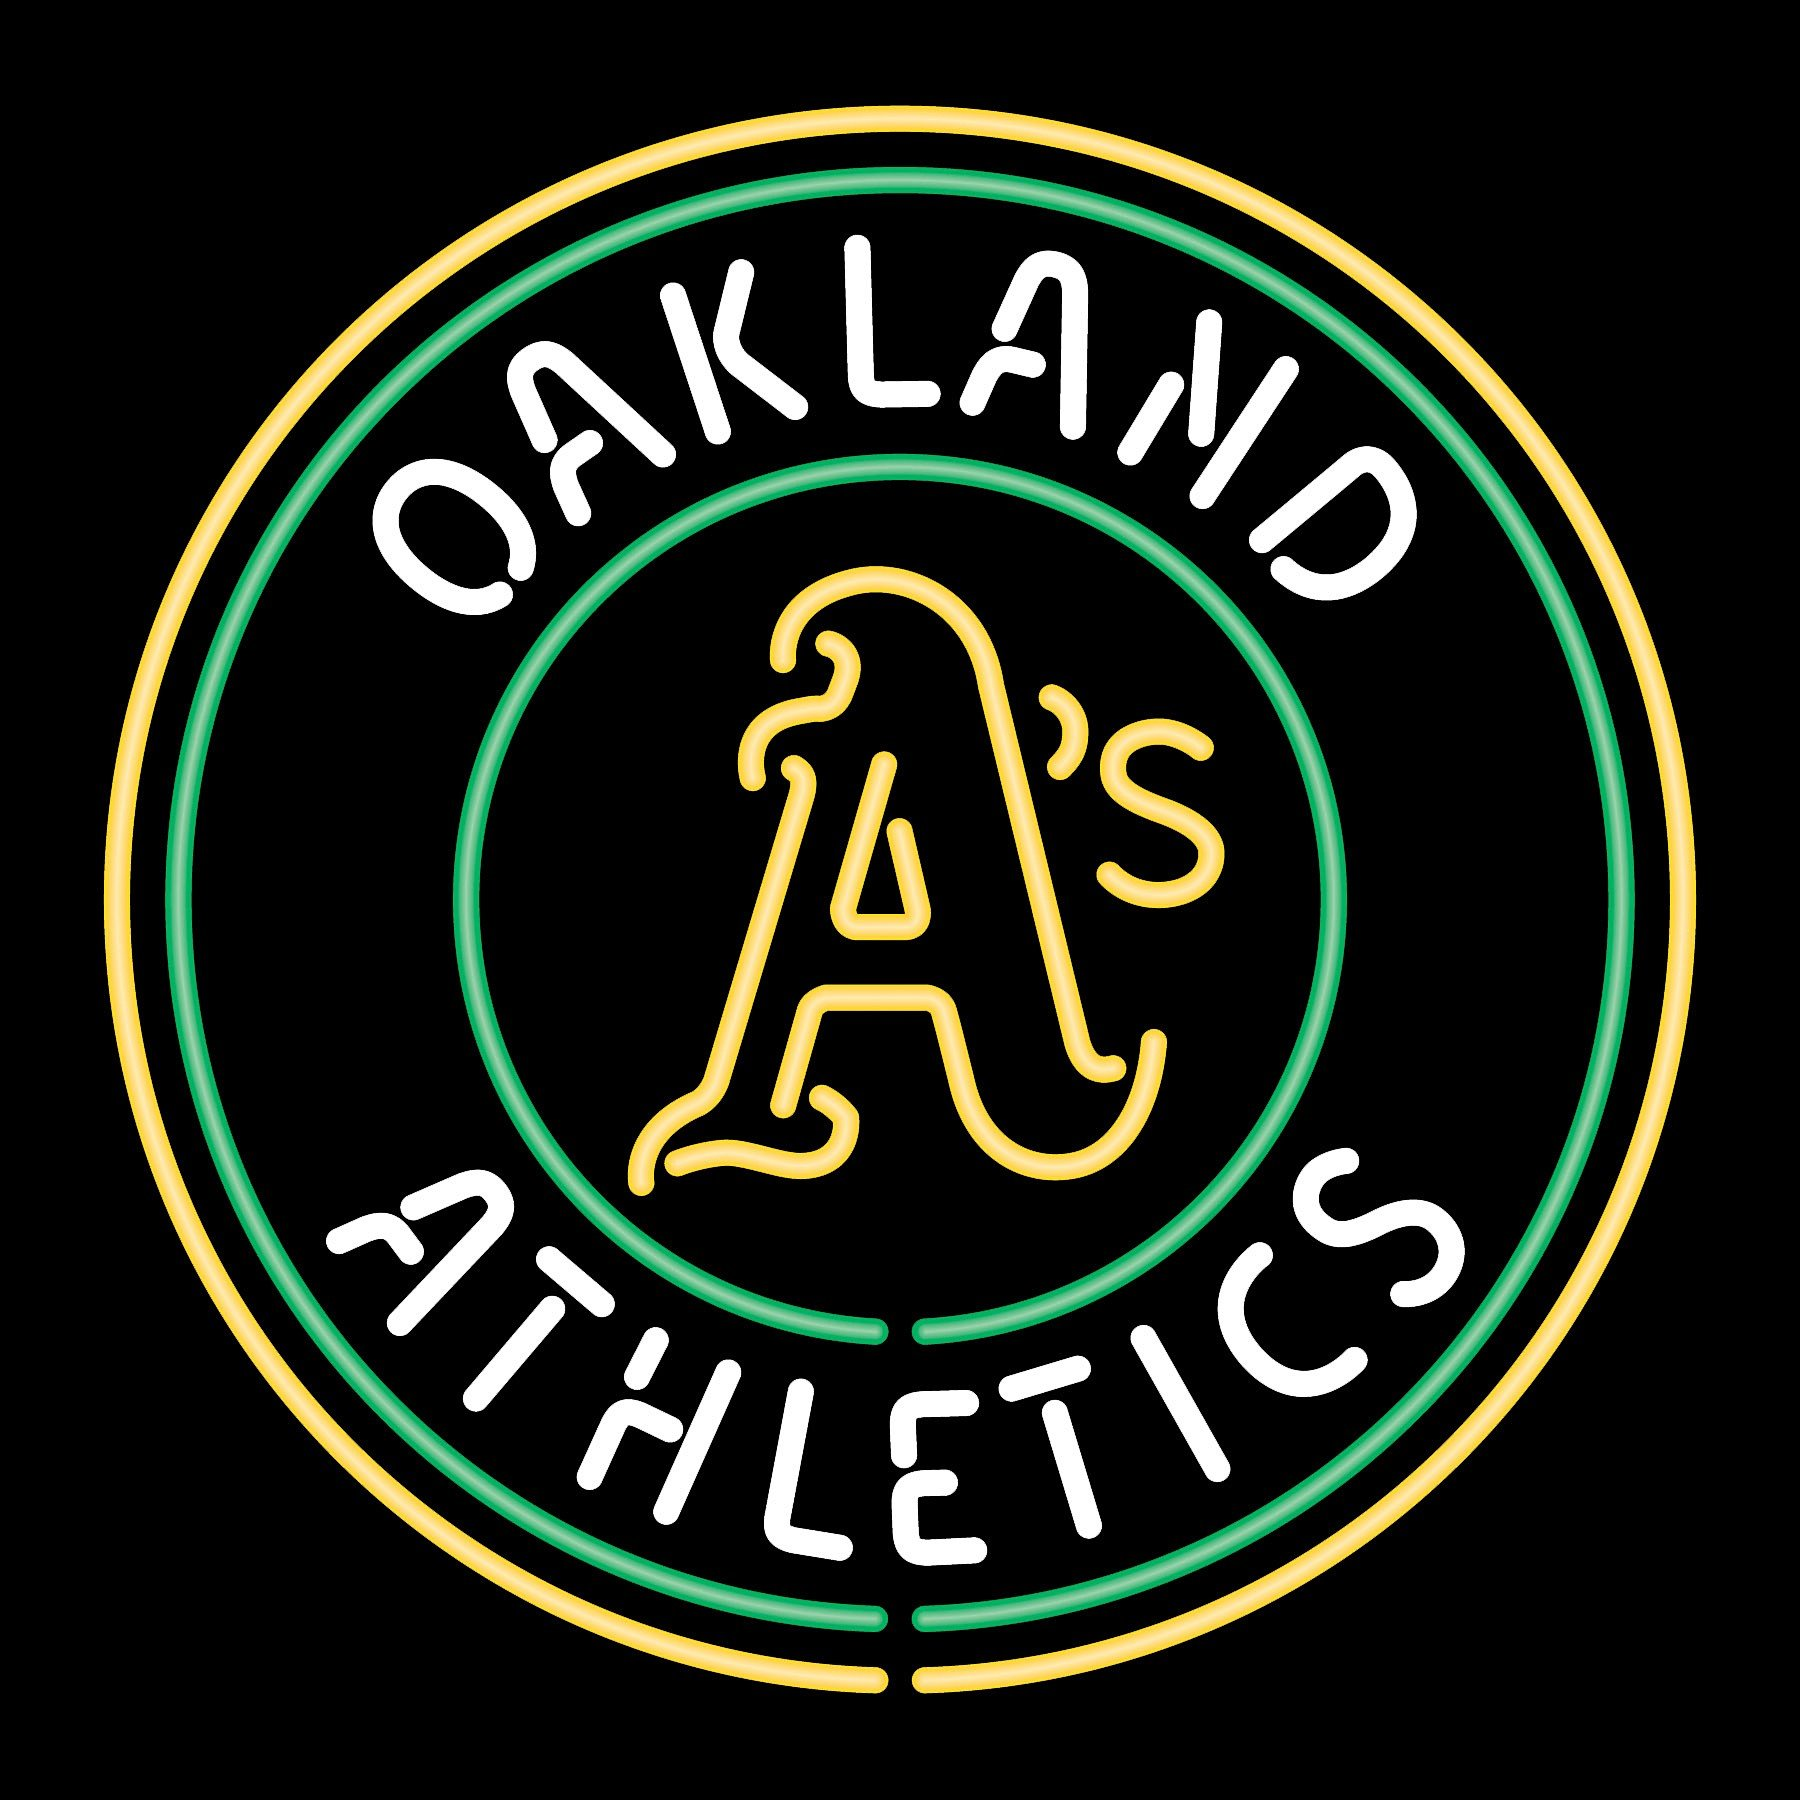 1800x1800 - Oakland Athletics Wallpapers 16